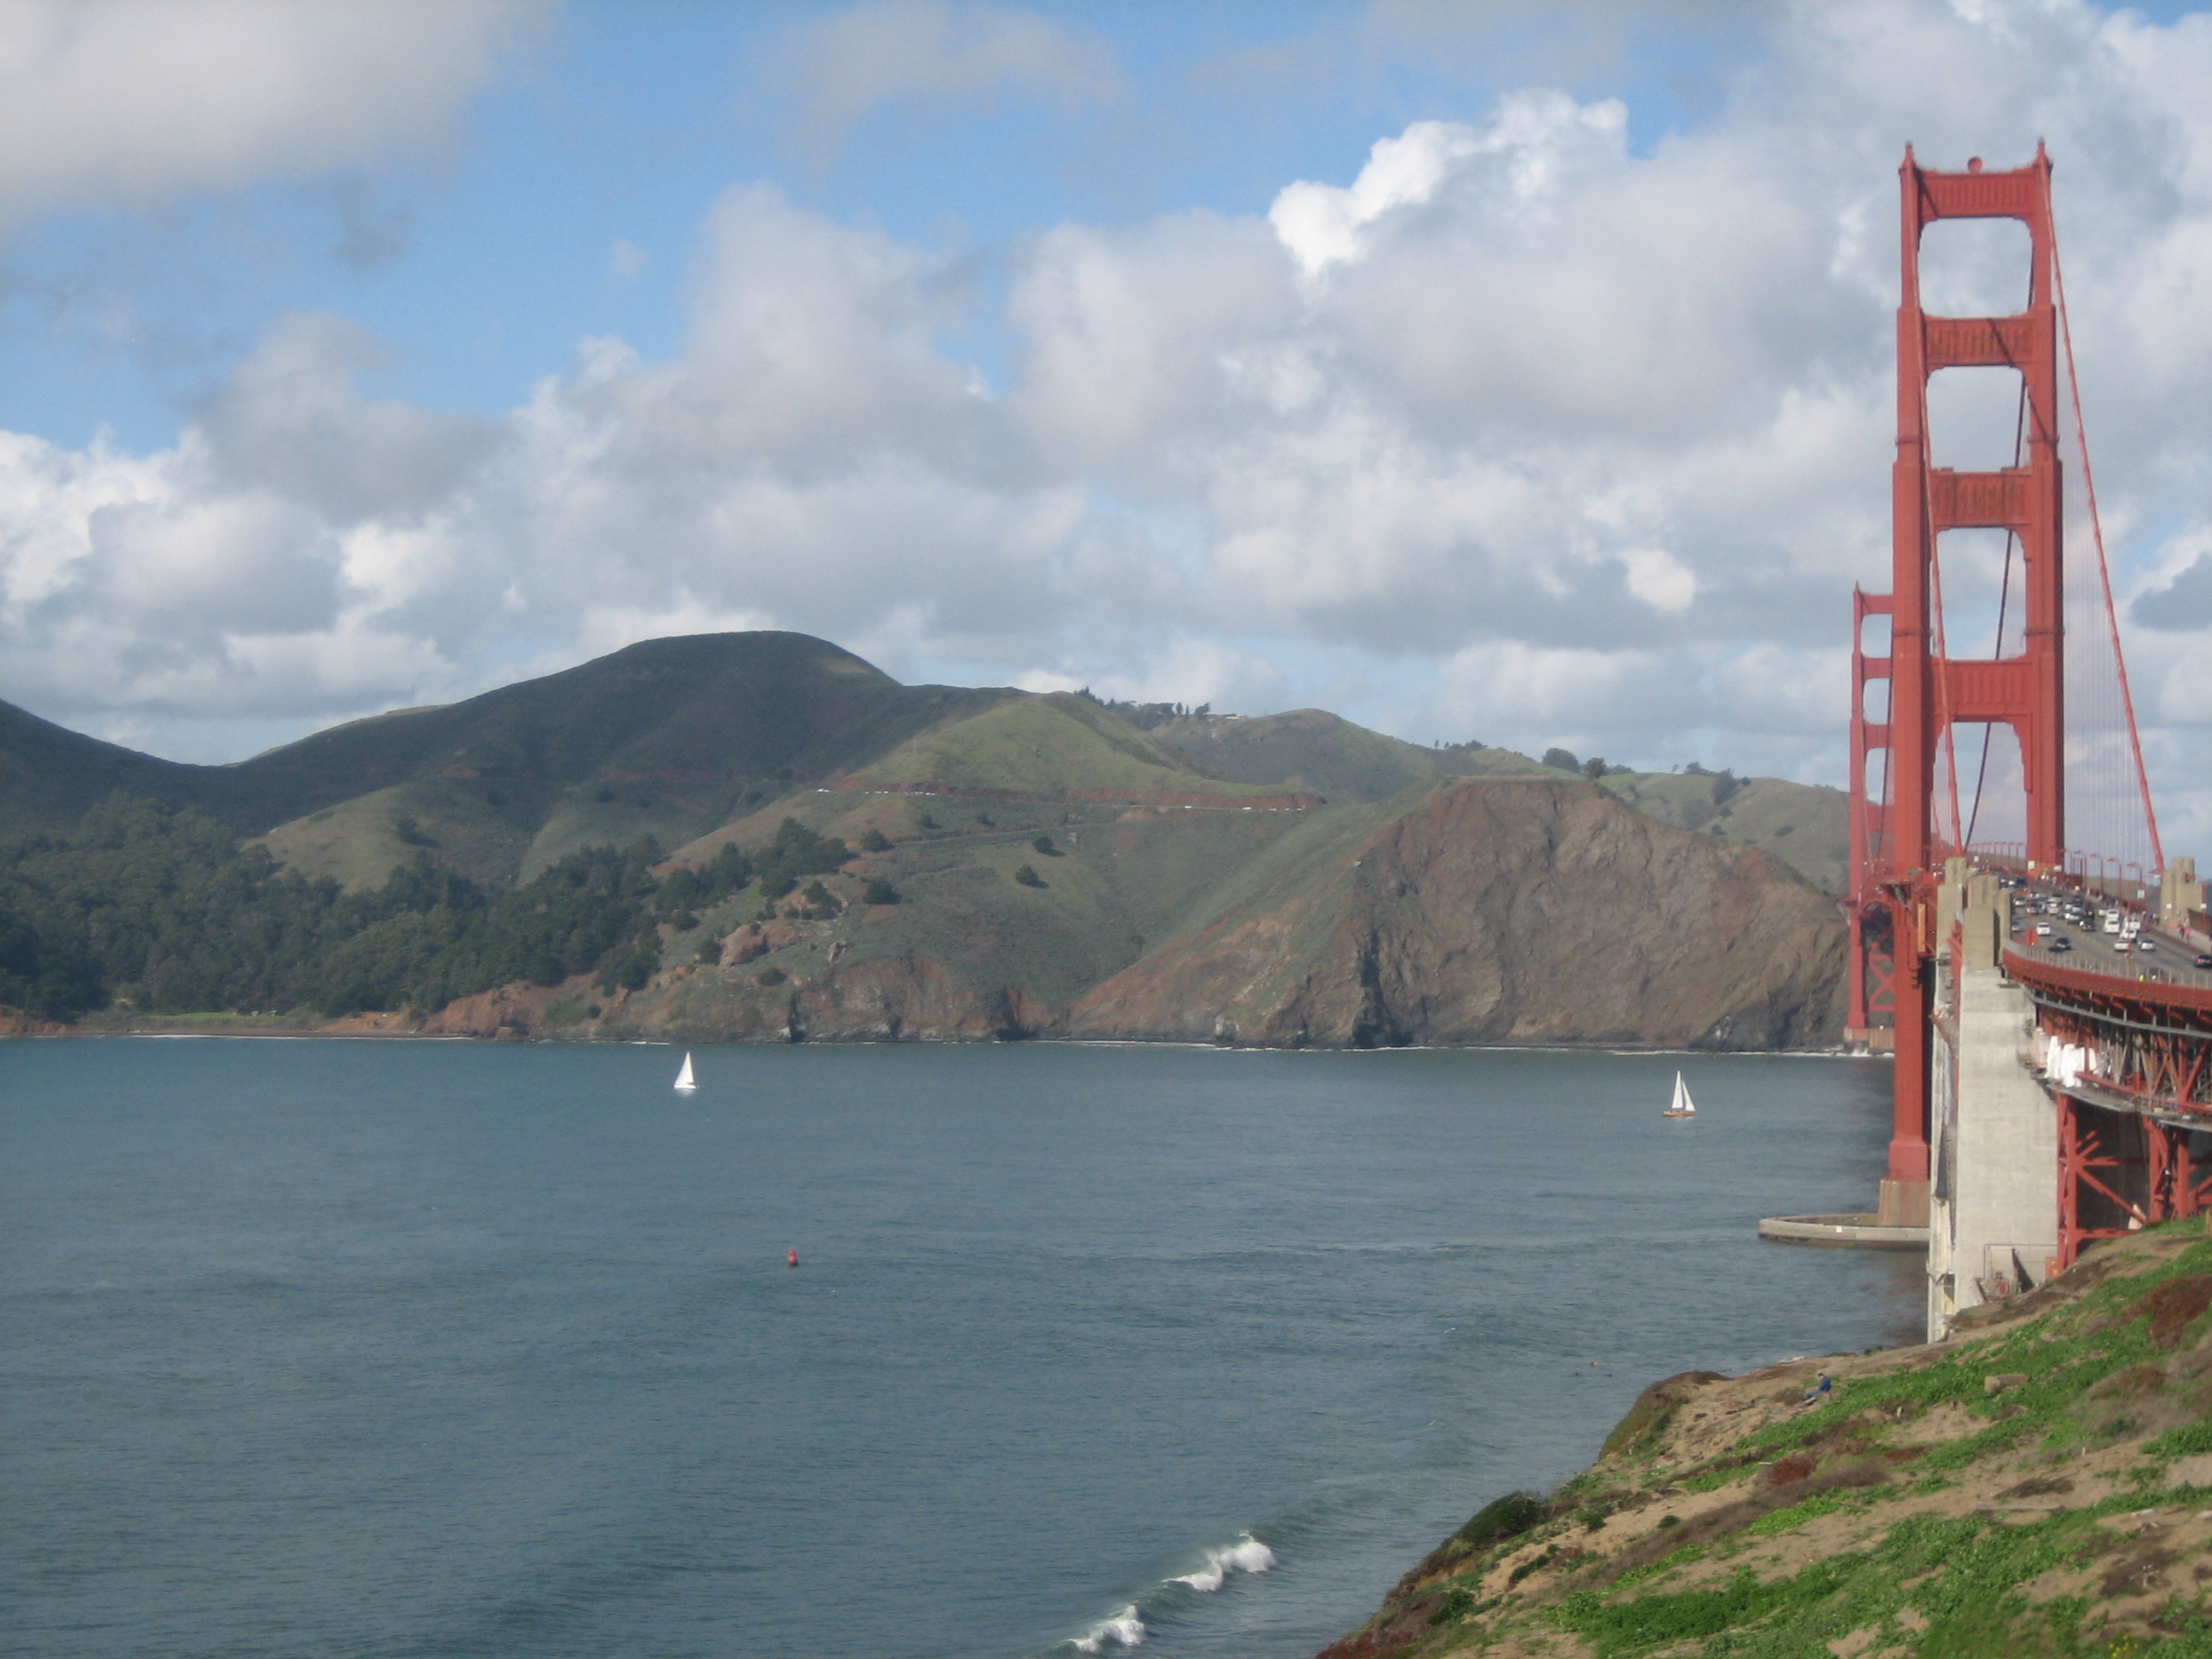 marin headlands on a clear day with the golden gate bridge to the right